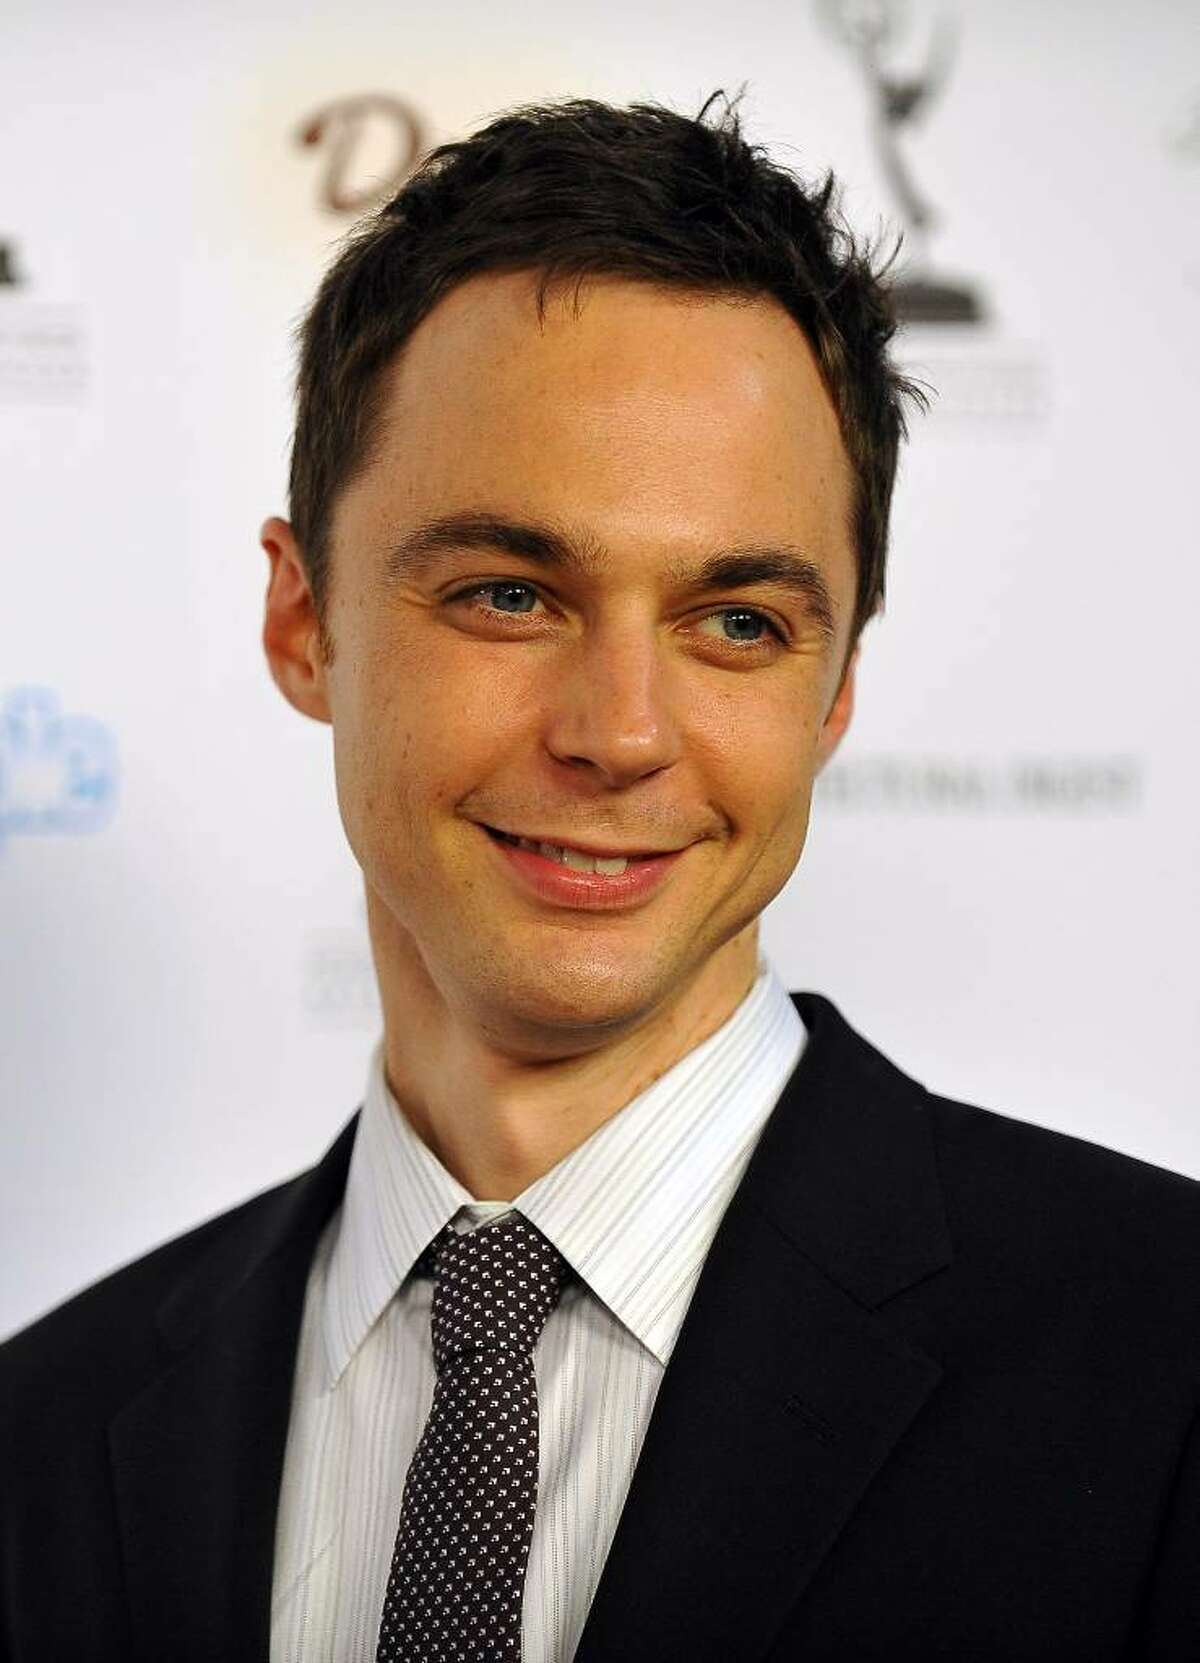 Actor Jim Parsons arrives for the 61st Primetime Emmy Awards outstanding performance nominees reception in West Hollywood, California on September 17, 2009.